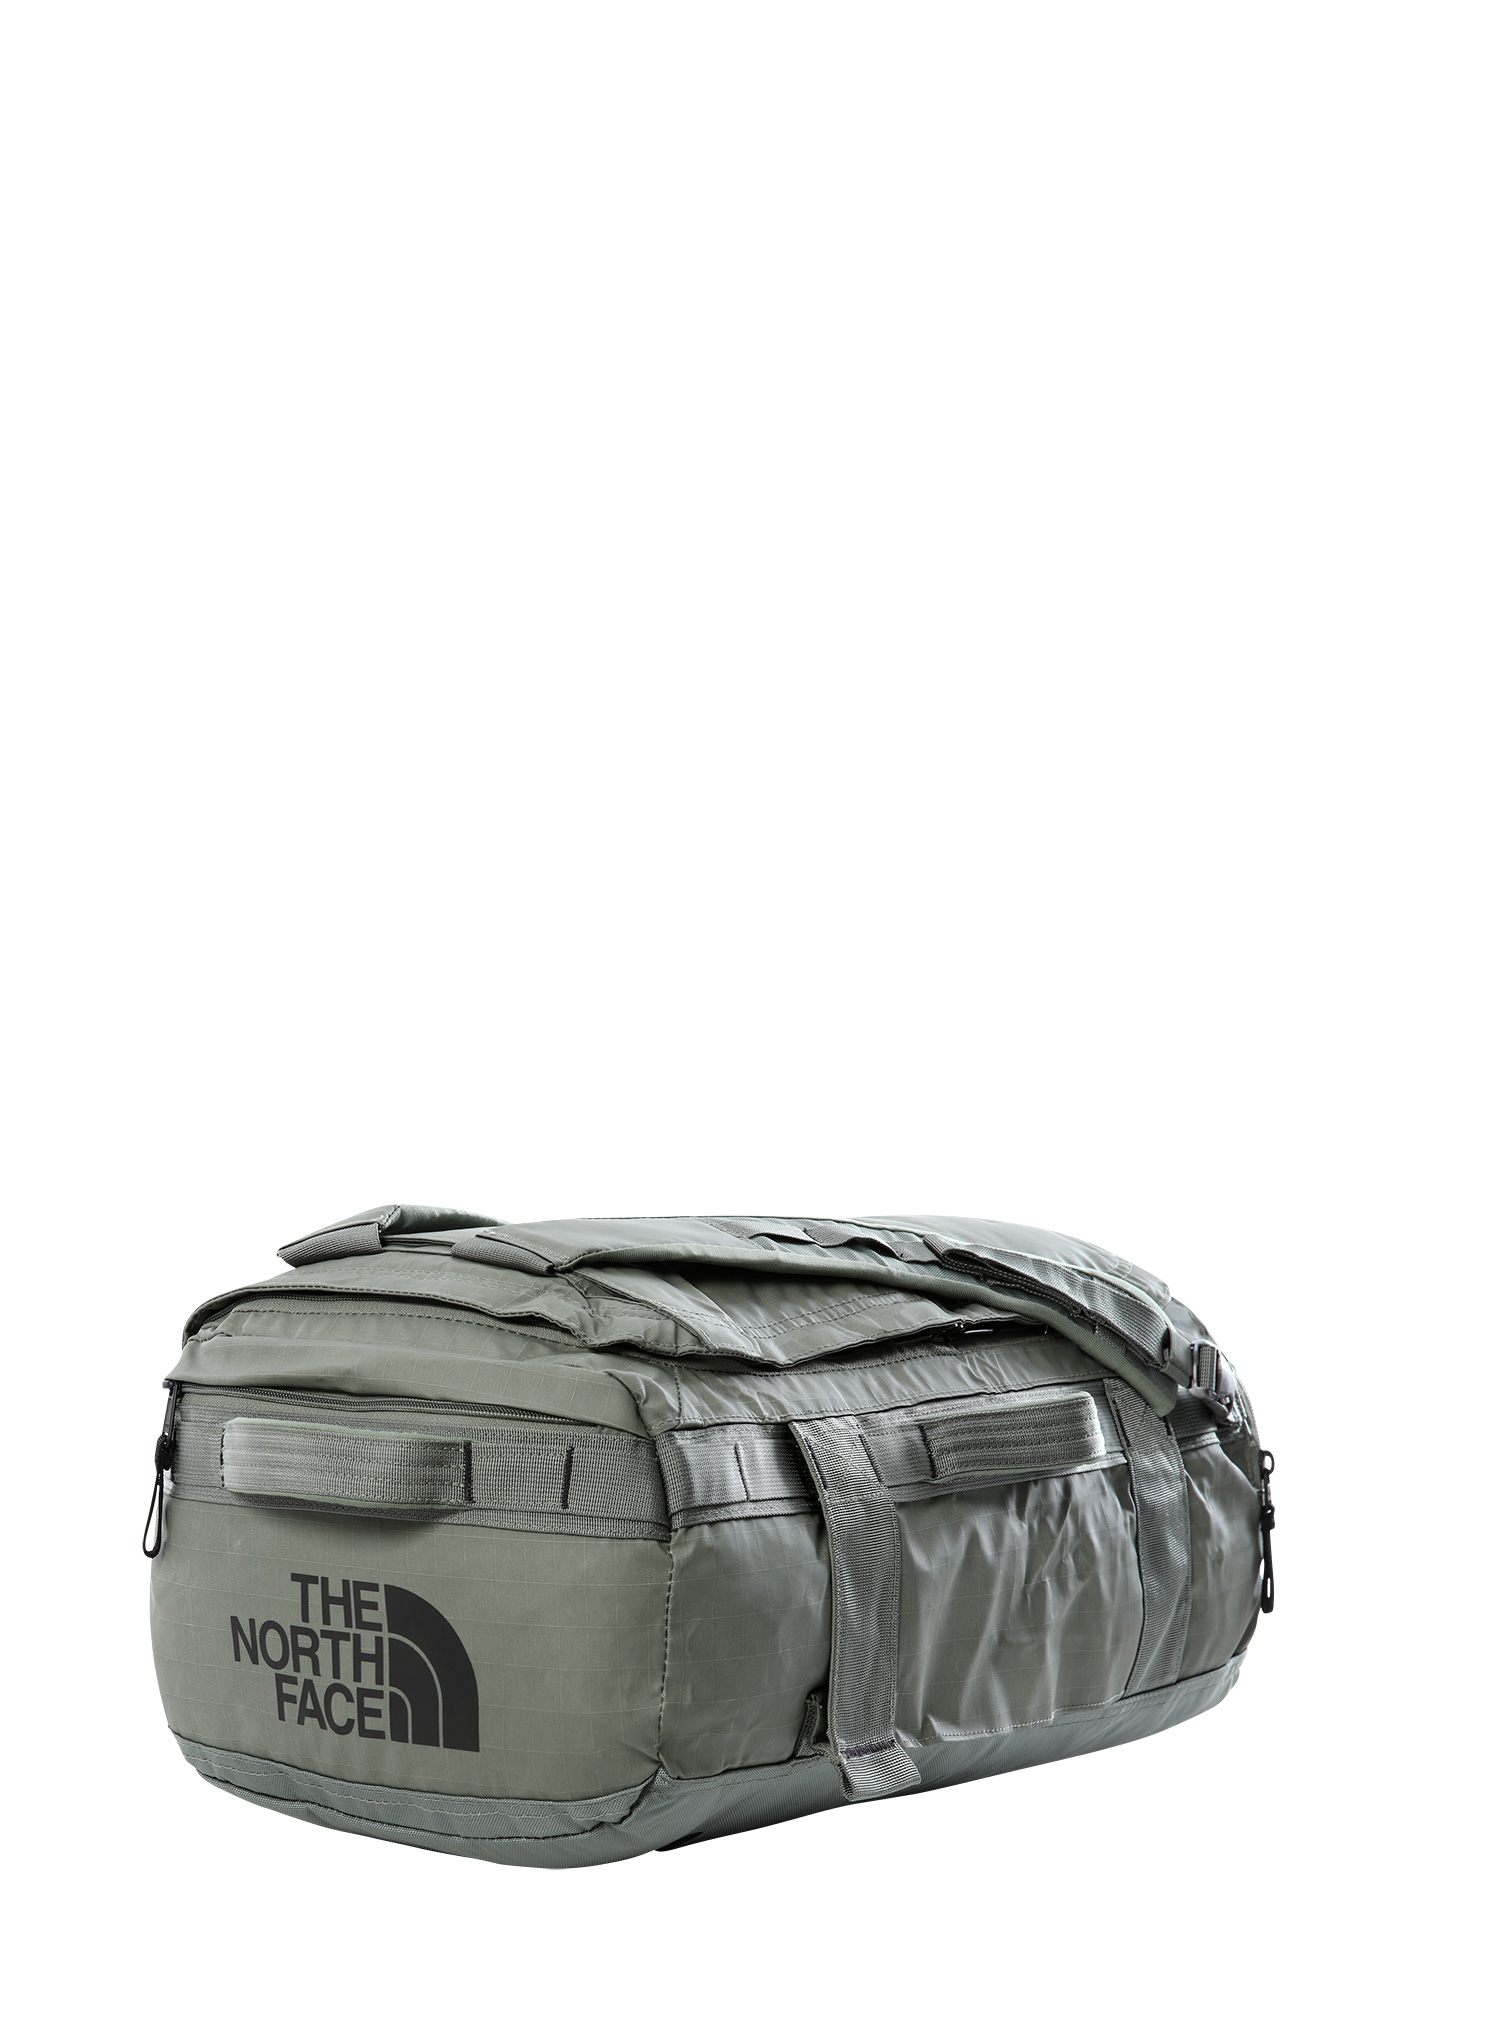 Torba The North Face Base Camp Voyager Duffel 32L - green/blk - zdjęcie nr. 1